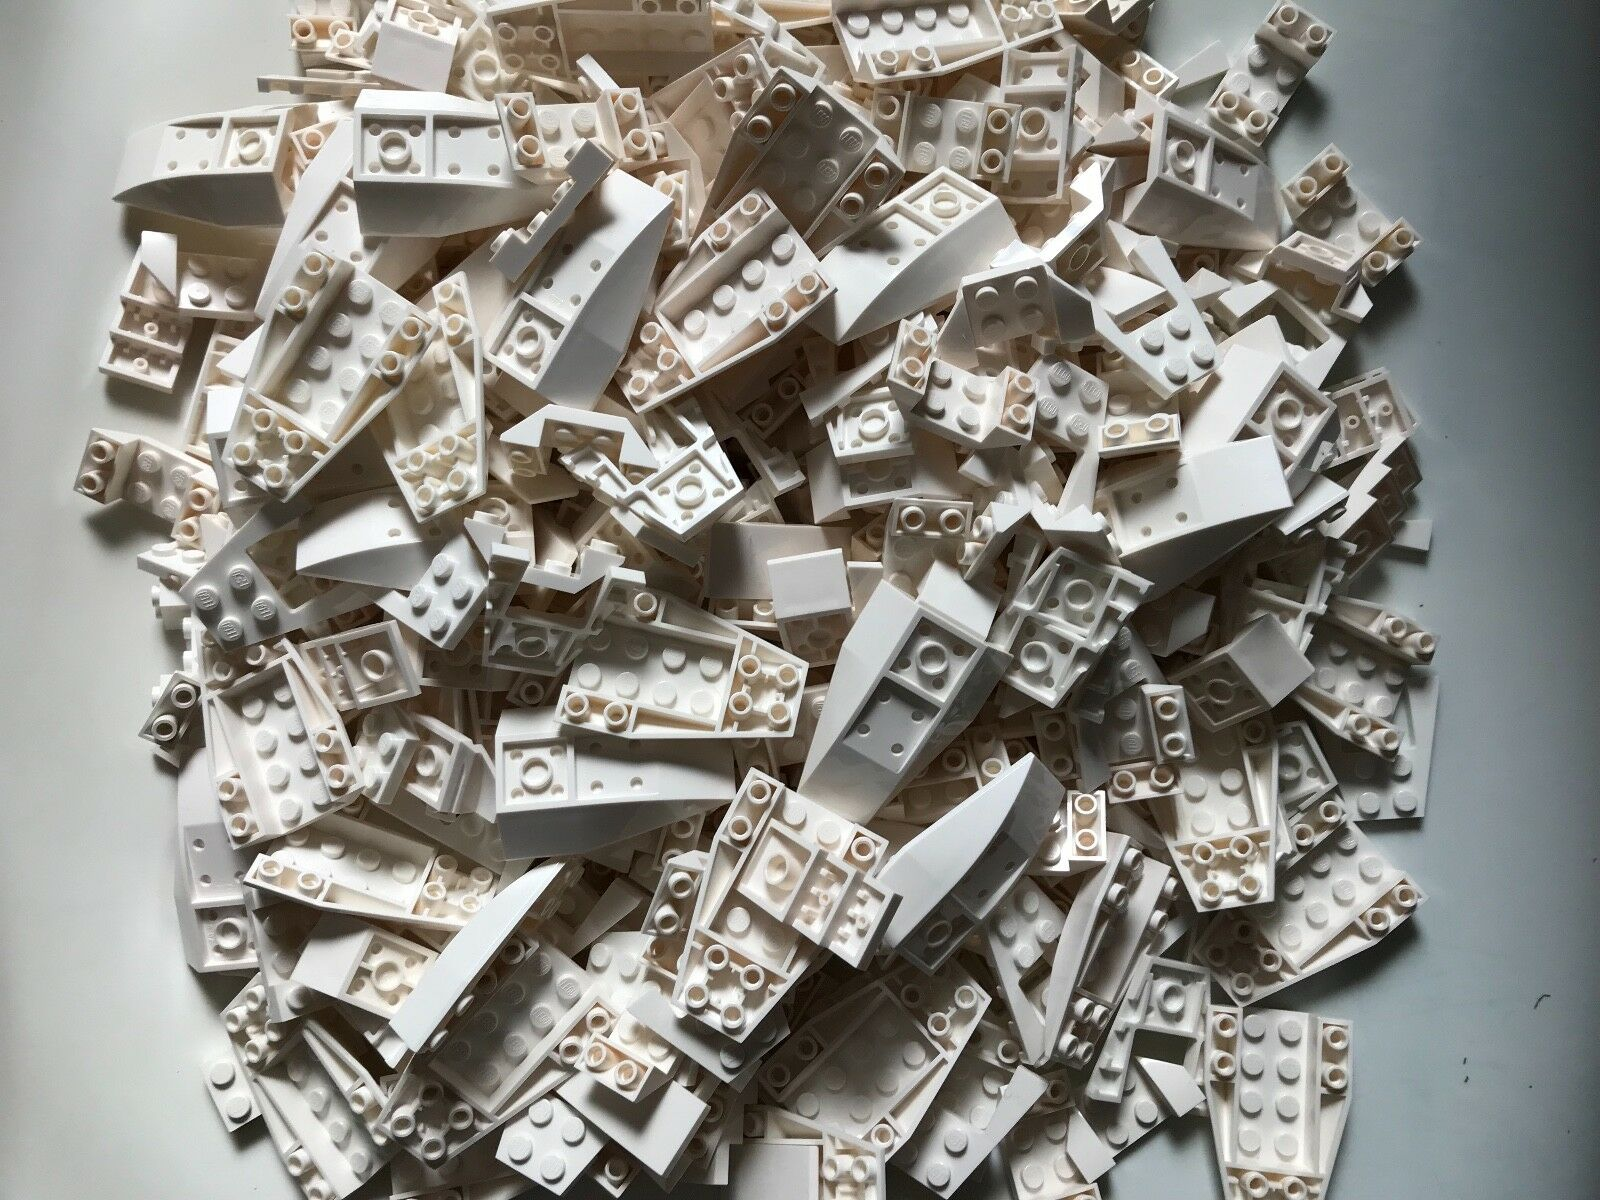 740g LEGO parts - Weiß lot - KEY PARTS FOR CARS SPEEDERS BOATS - 7 TYPES CITY